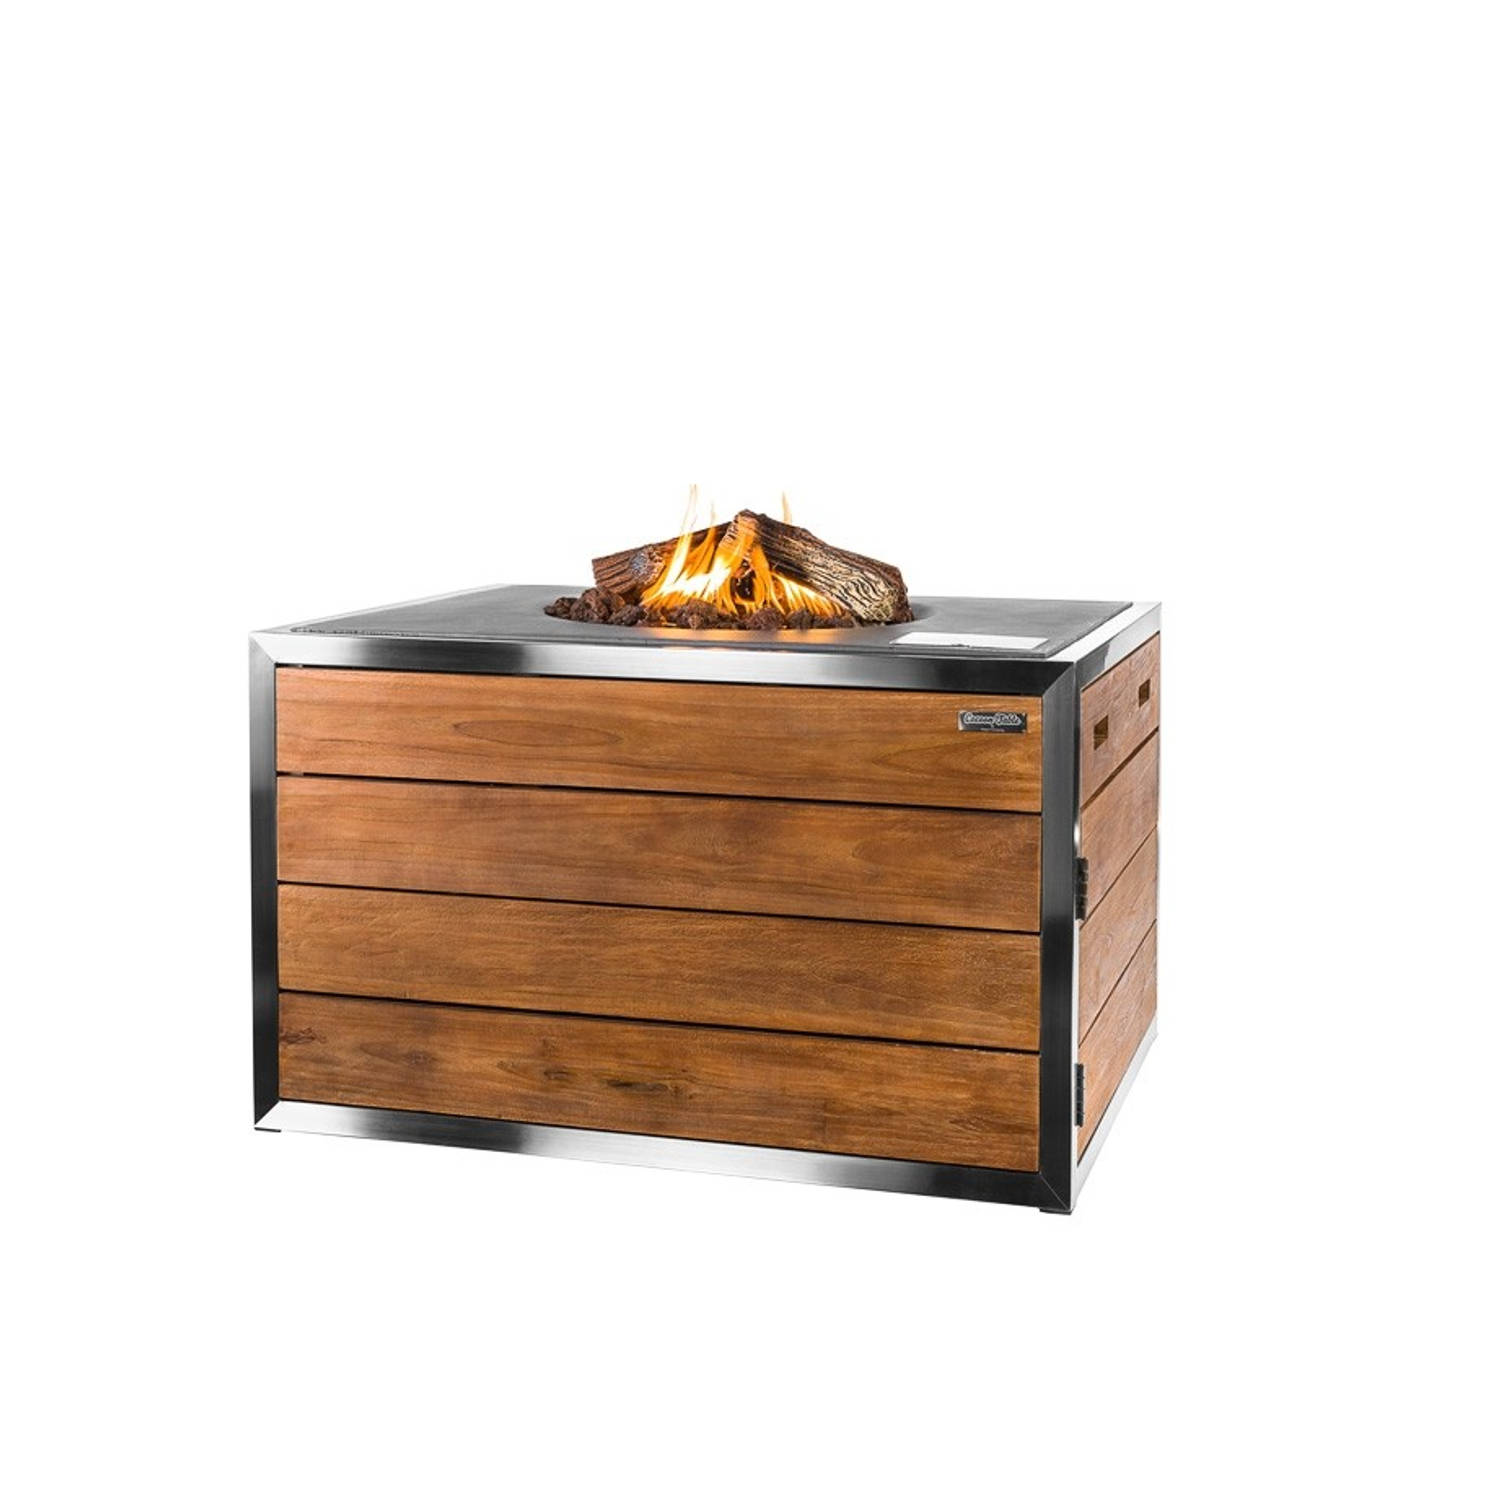 Happy Cocooning Vuurtafel Teakhout Stainless steel Lounge Dining Rechthoek Antraciet